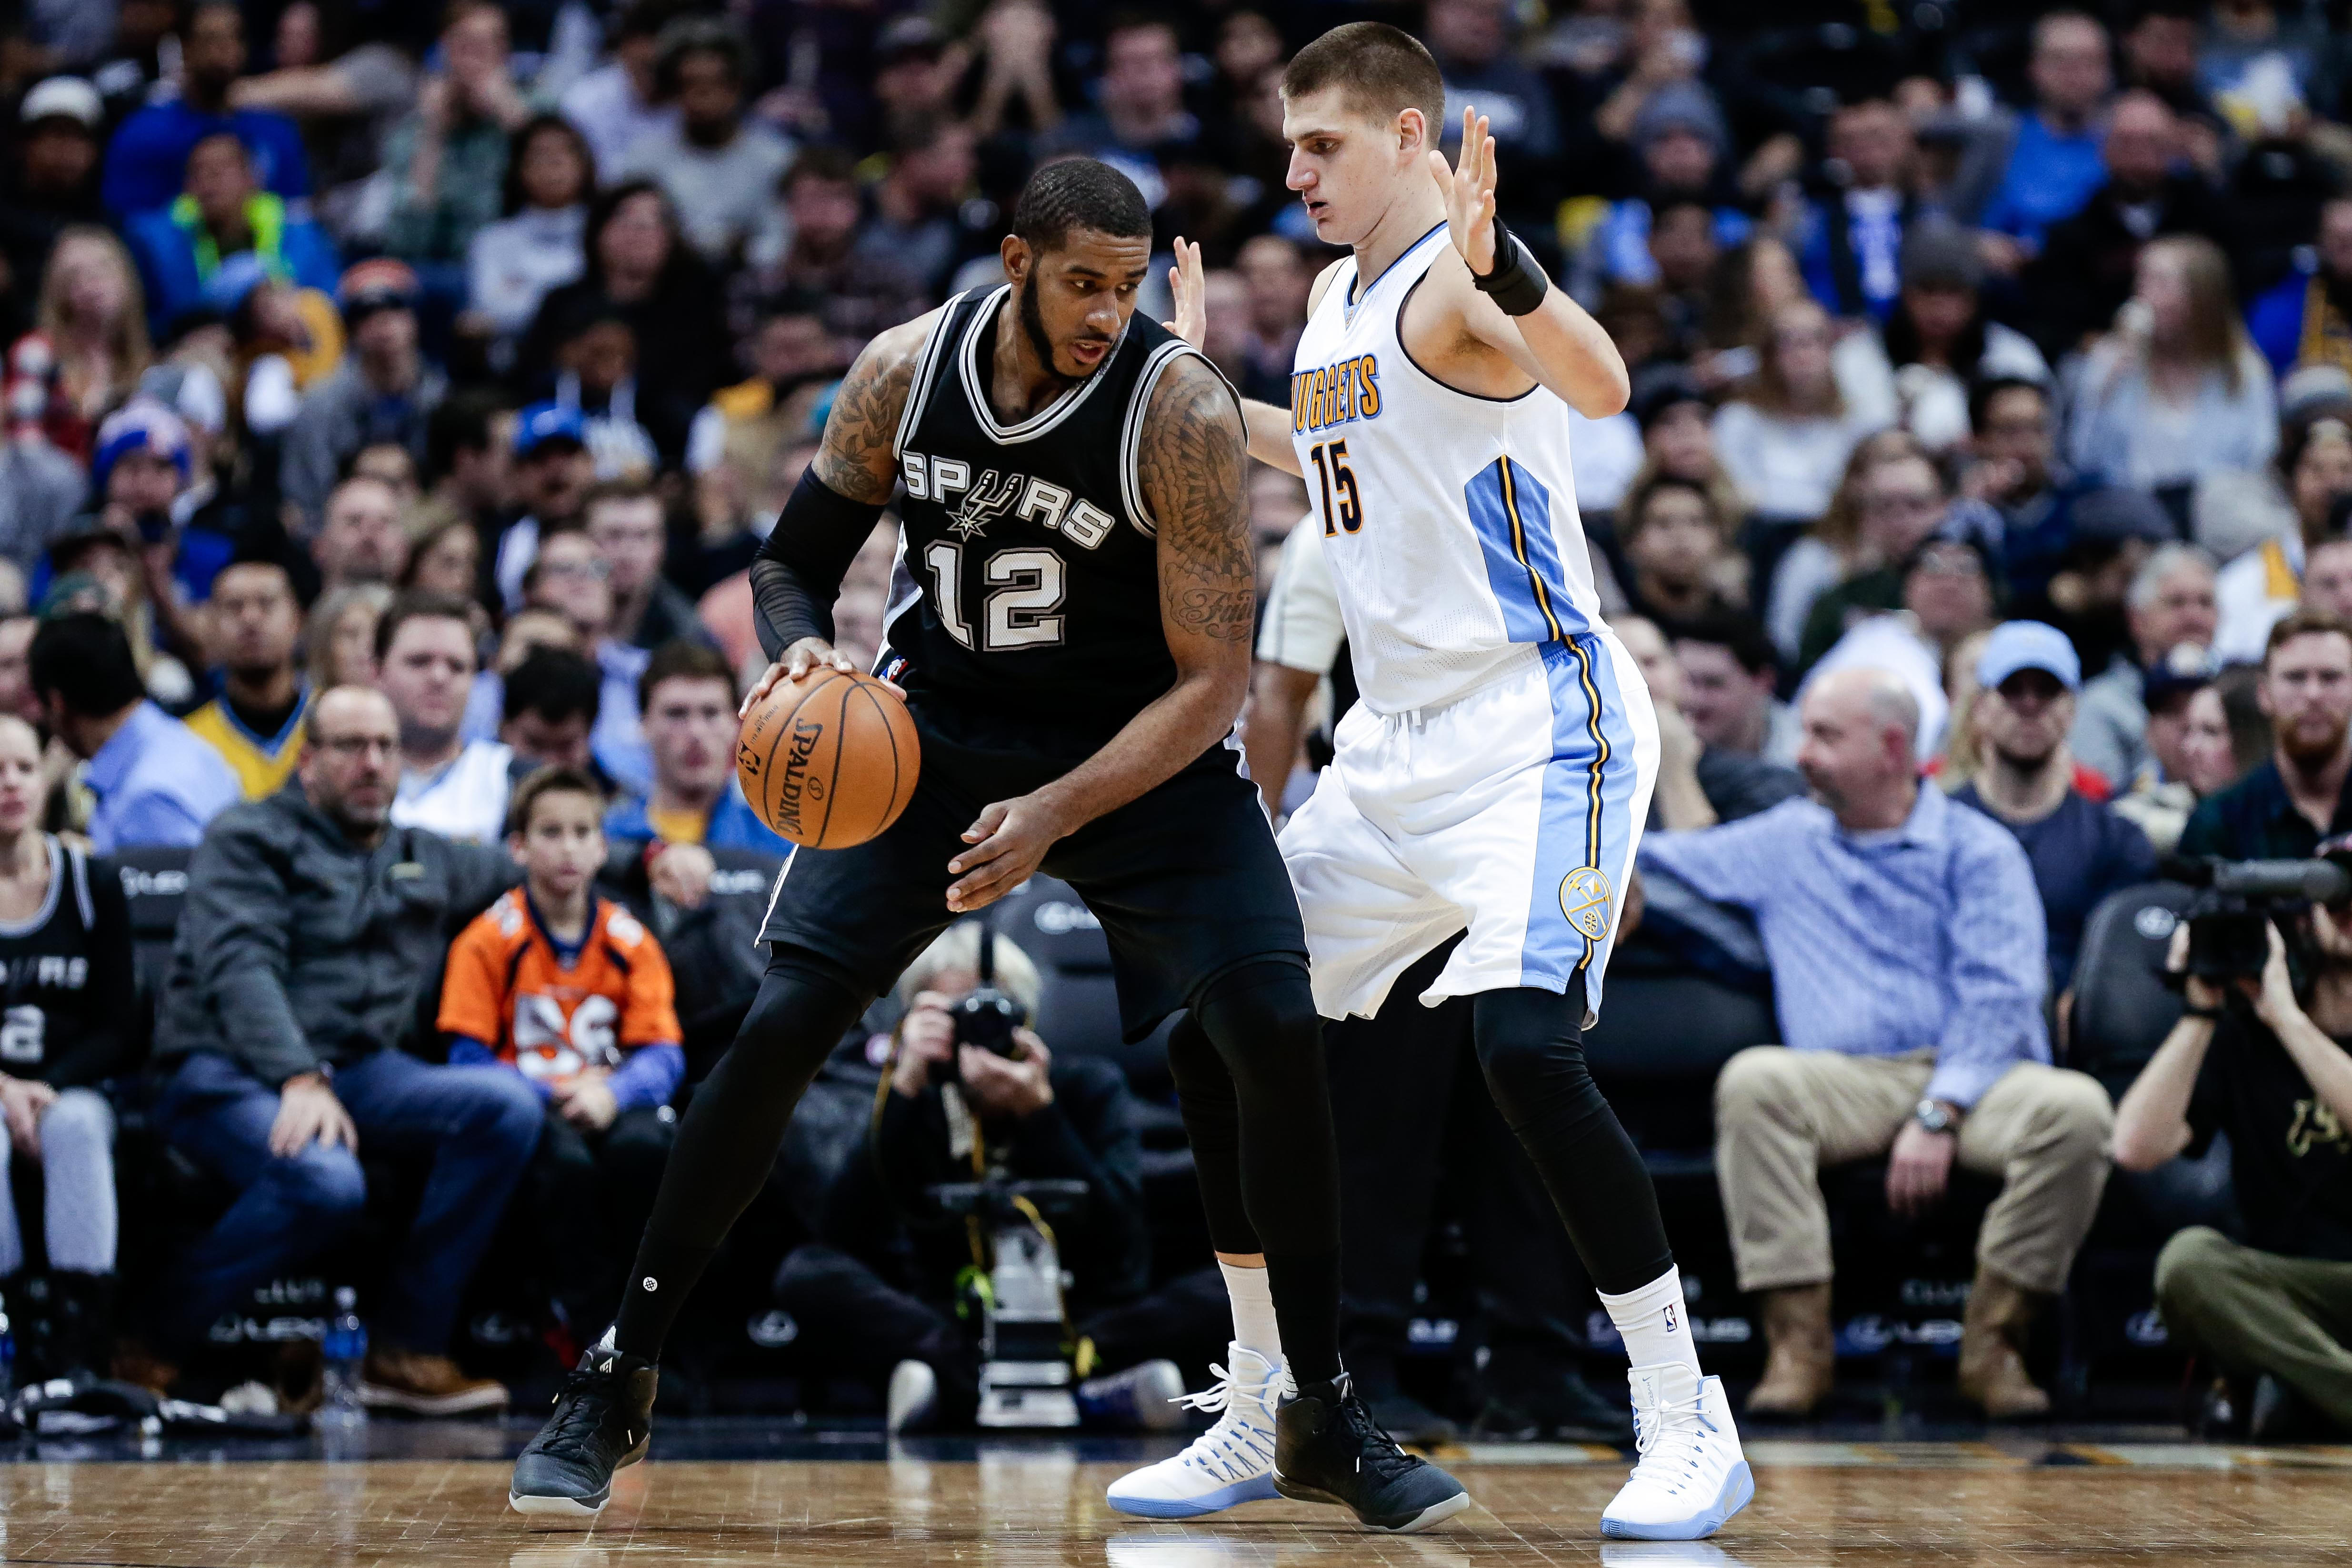 NBA Predictions: Will Nuggets vs. Spurs be high-scoring on Thursday? 1/19/17